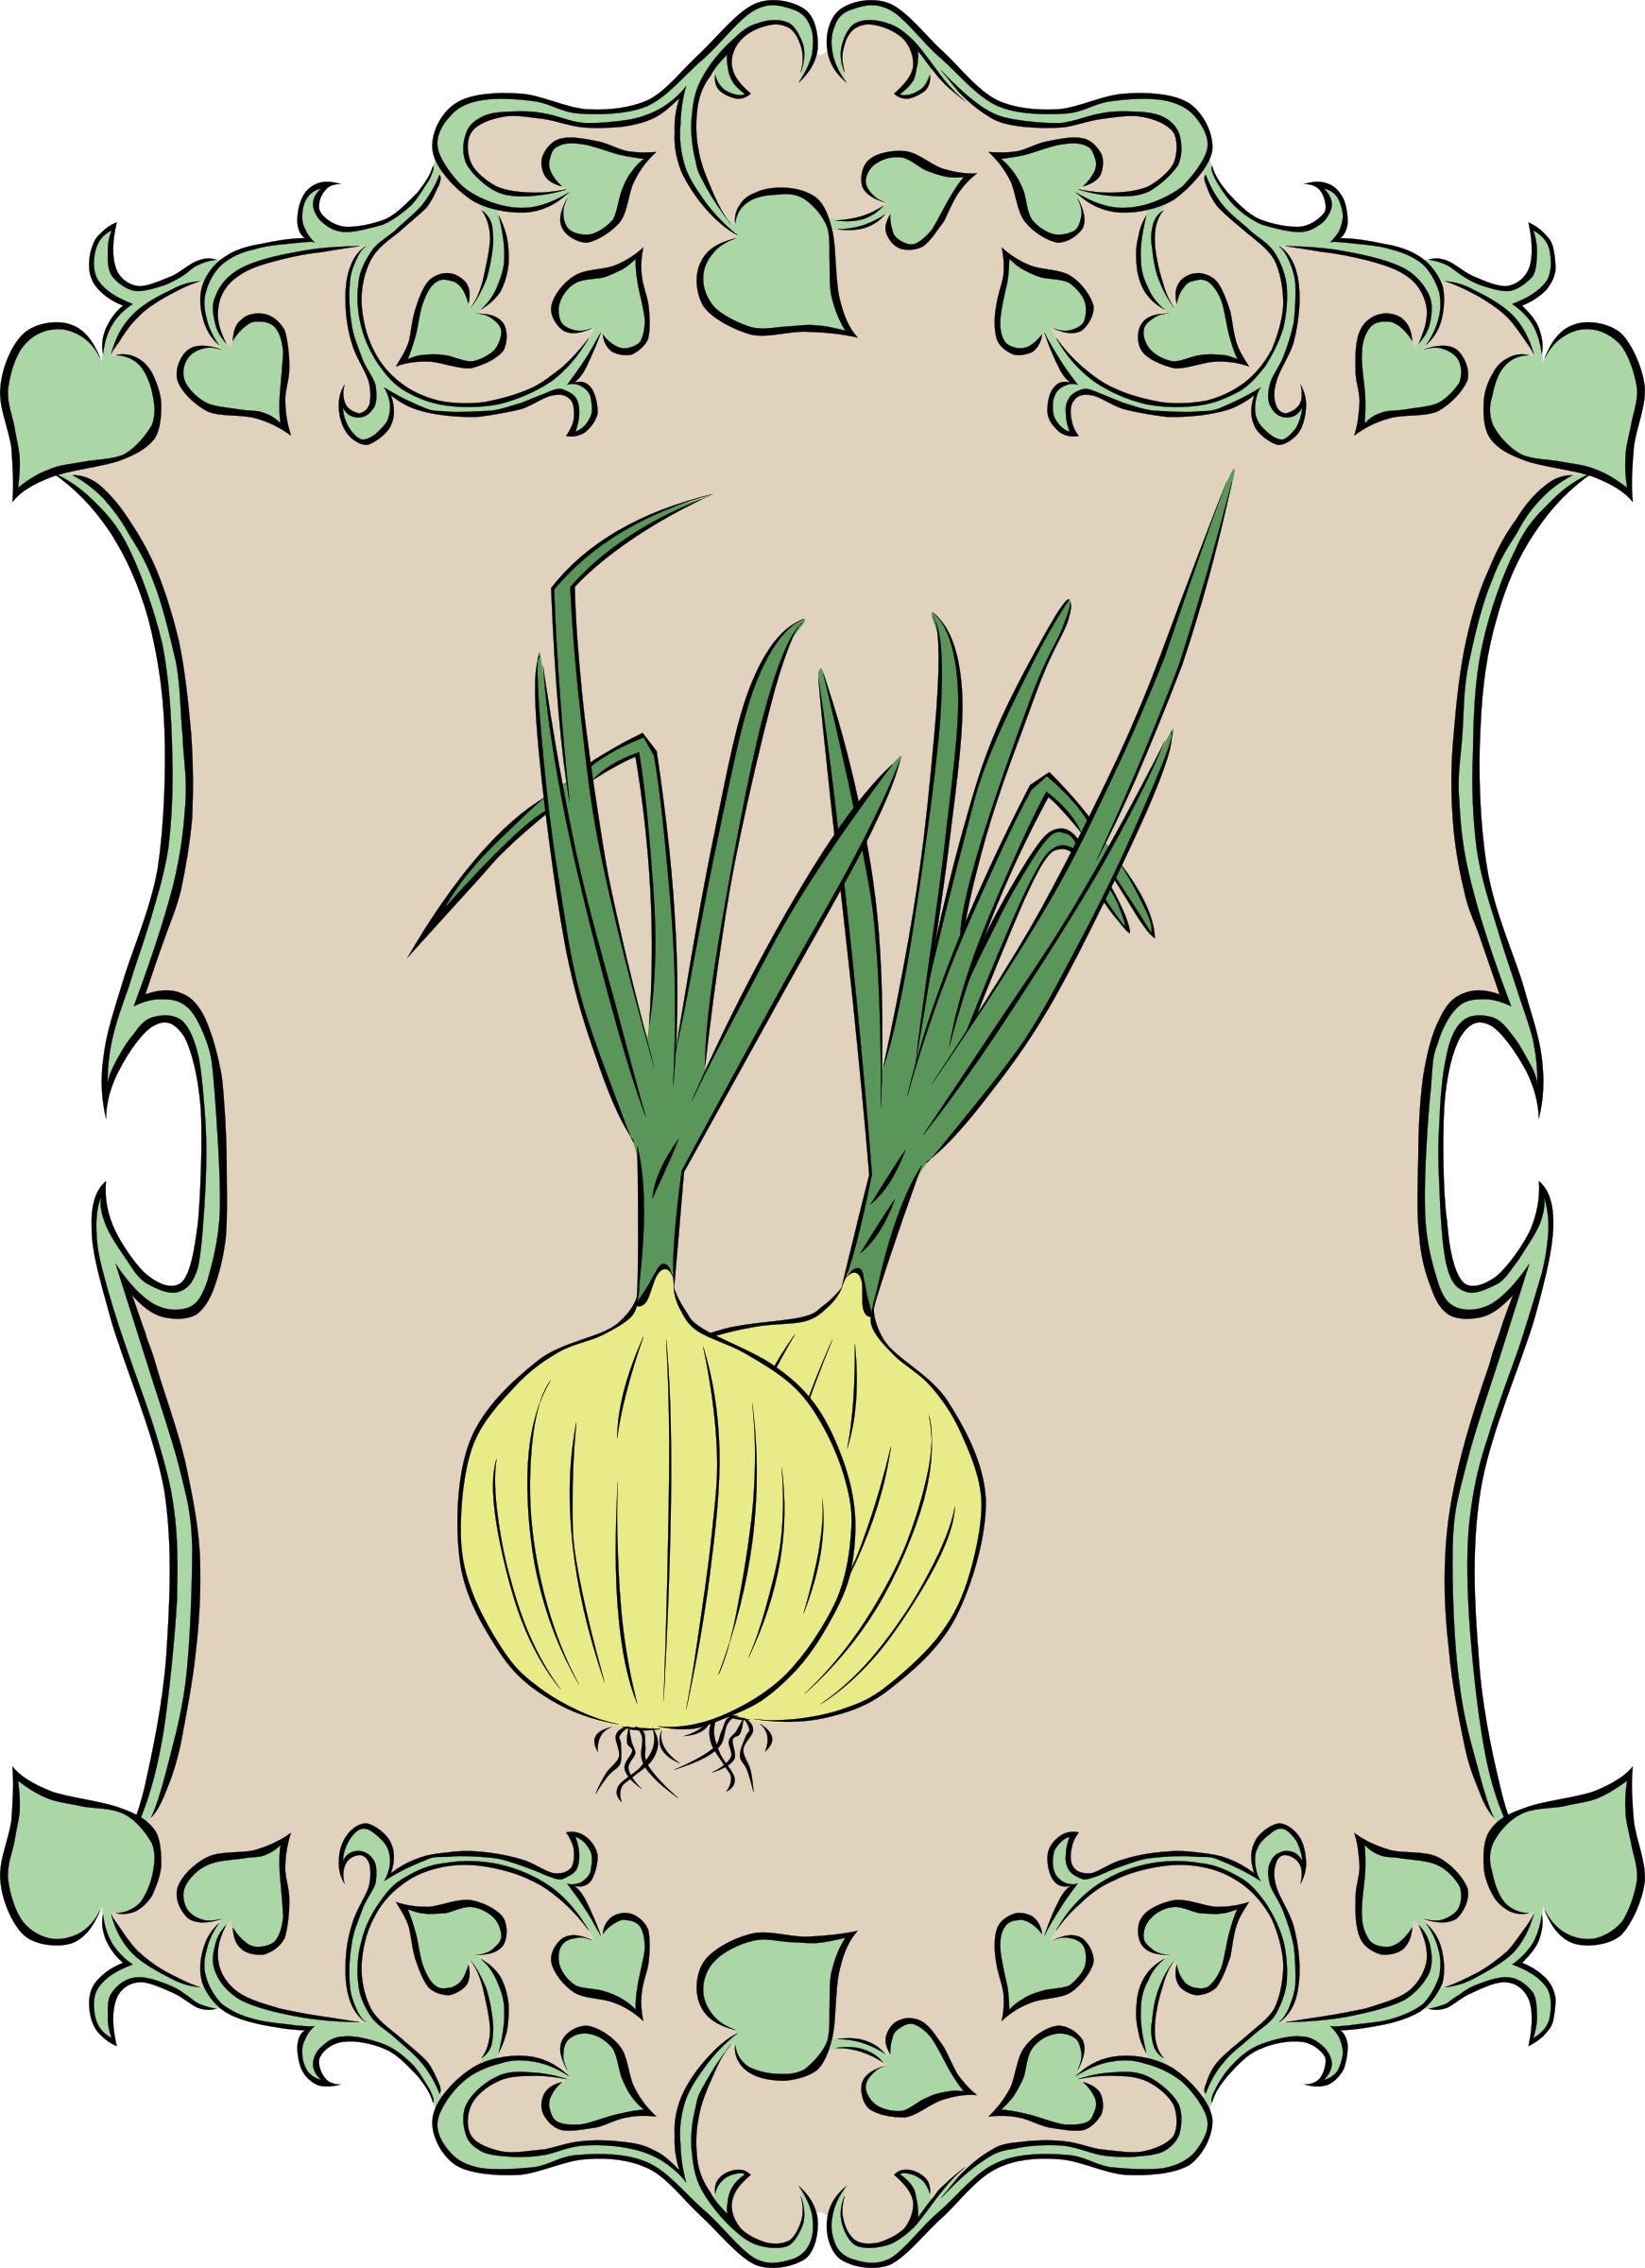 Garden Sign Onion by Gerald_G